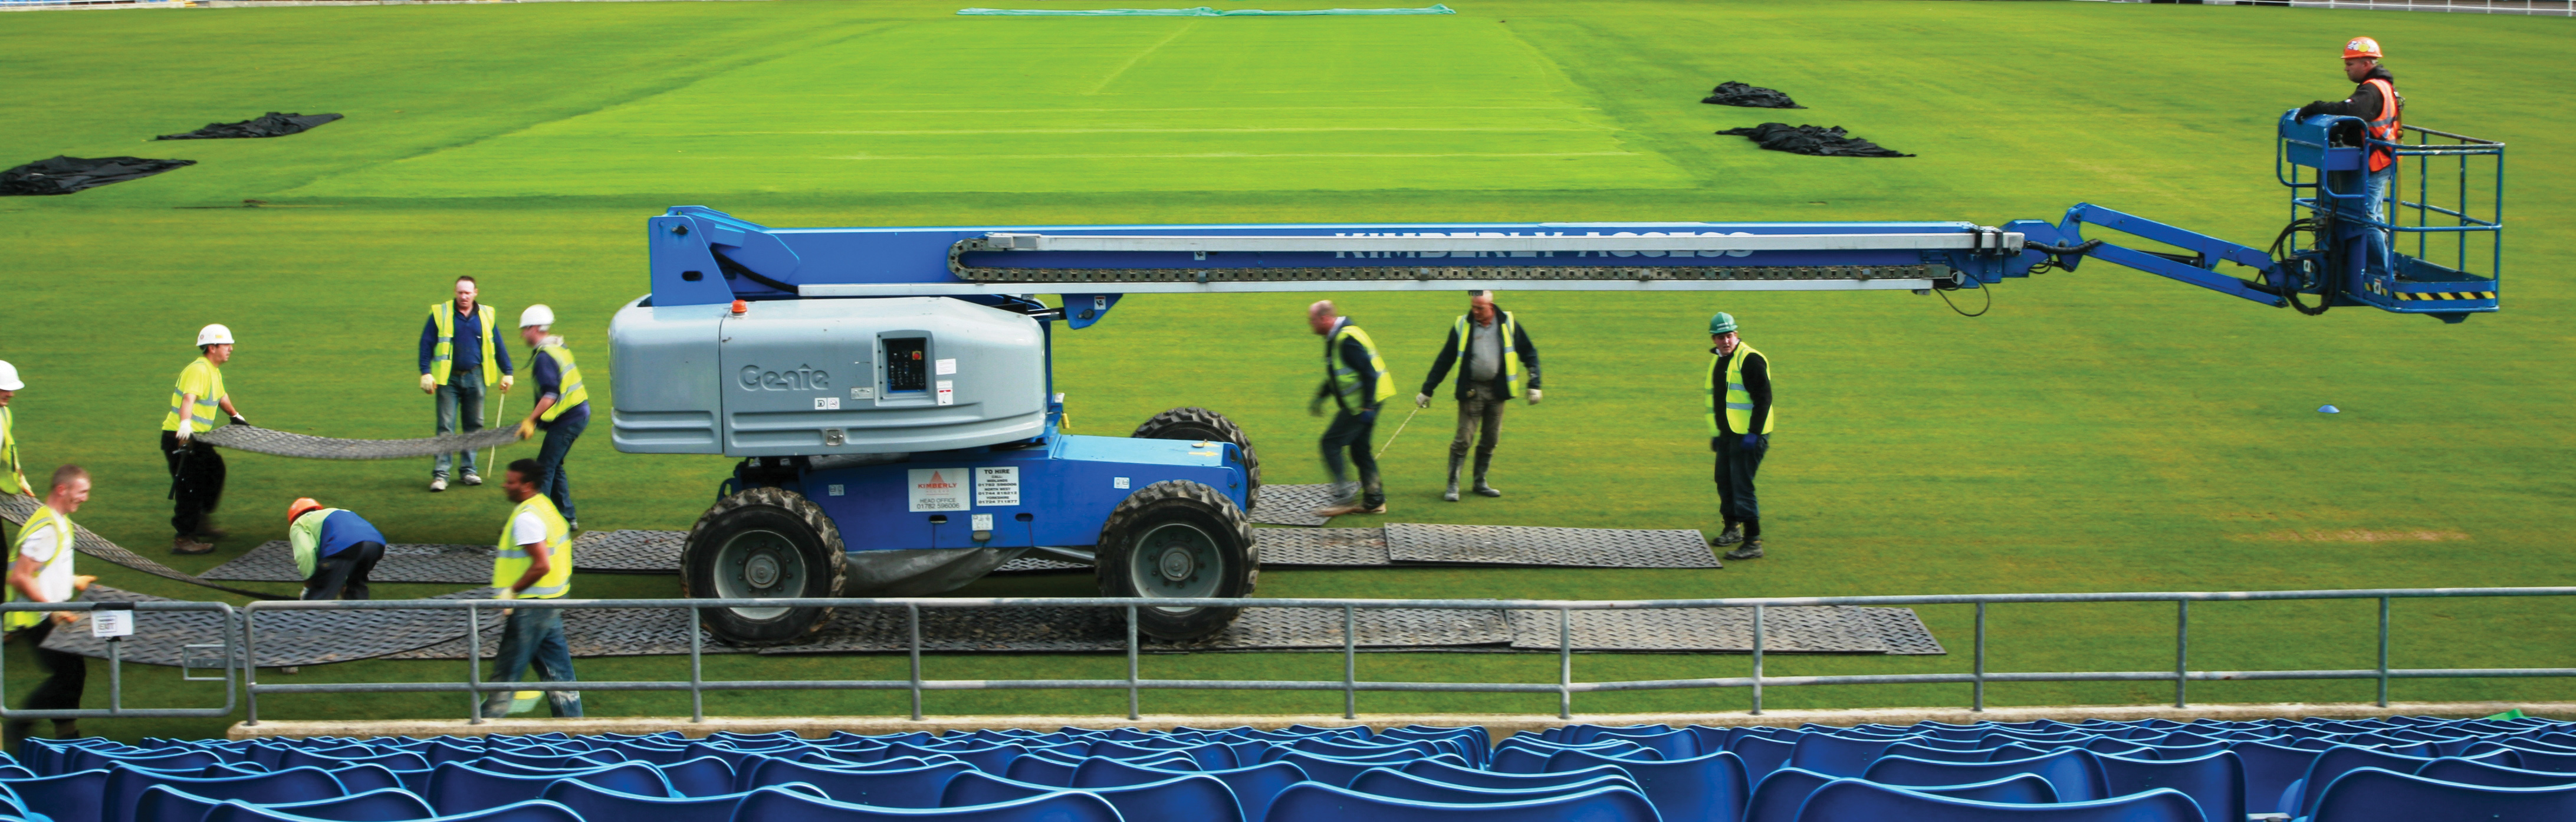 Ground-Guards Ground Protection Solutions Hire   Ground Guards   Ground Protection Mats